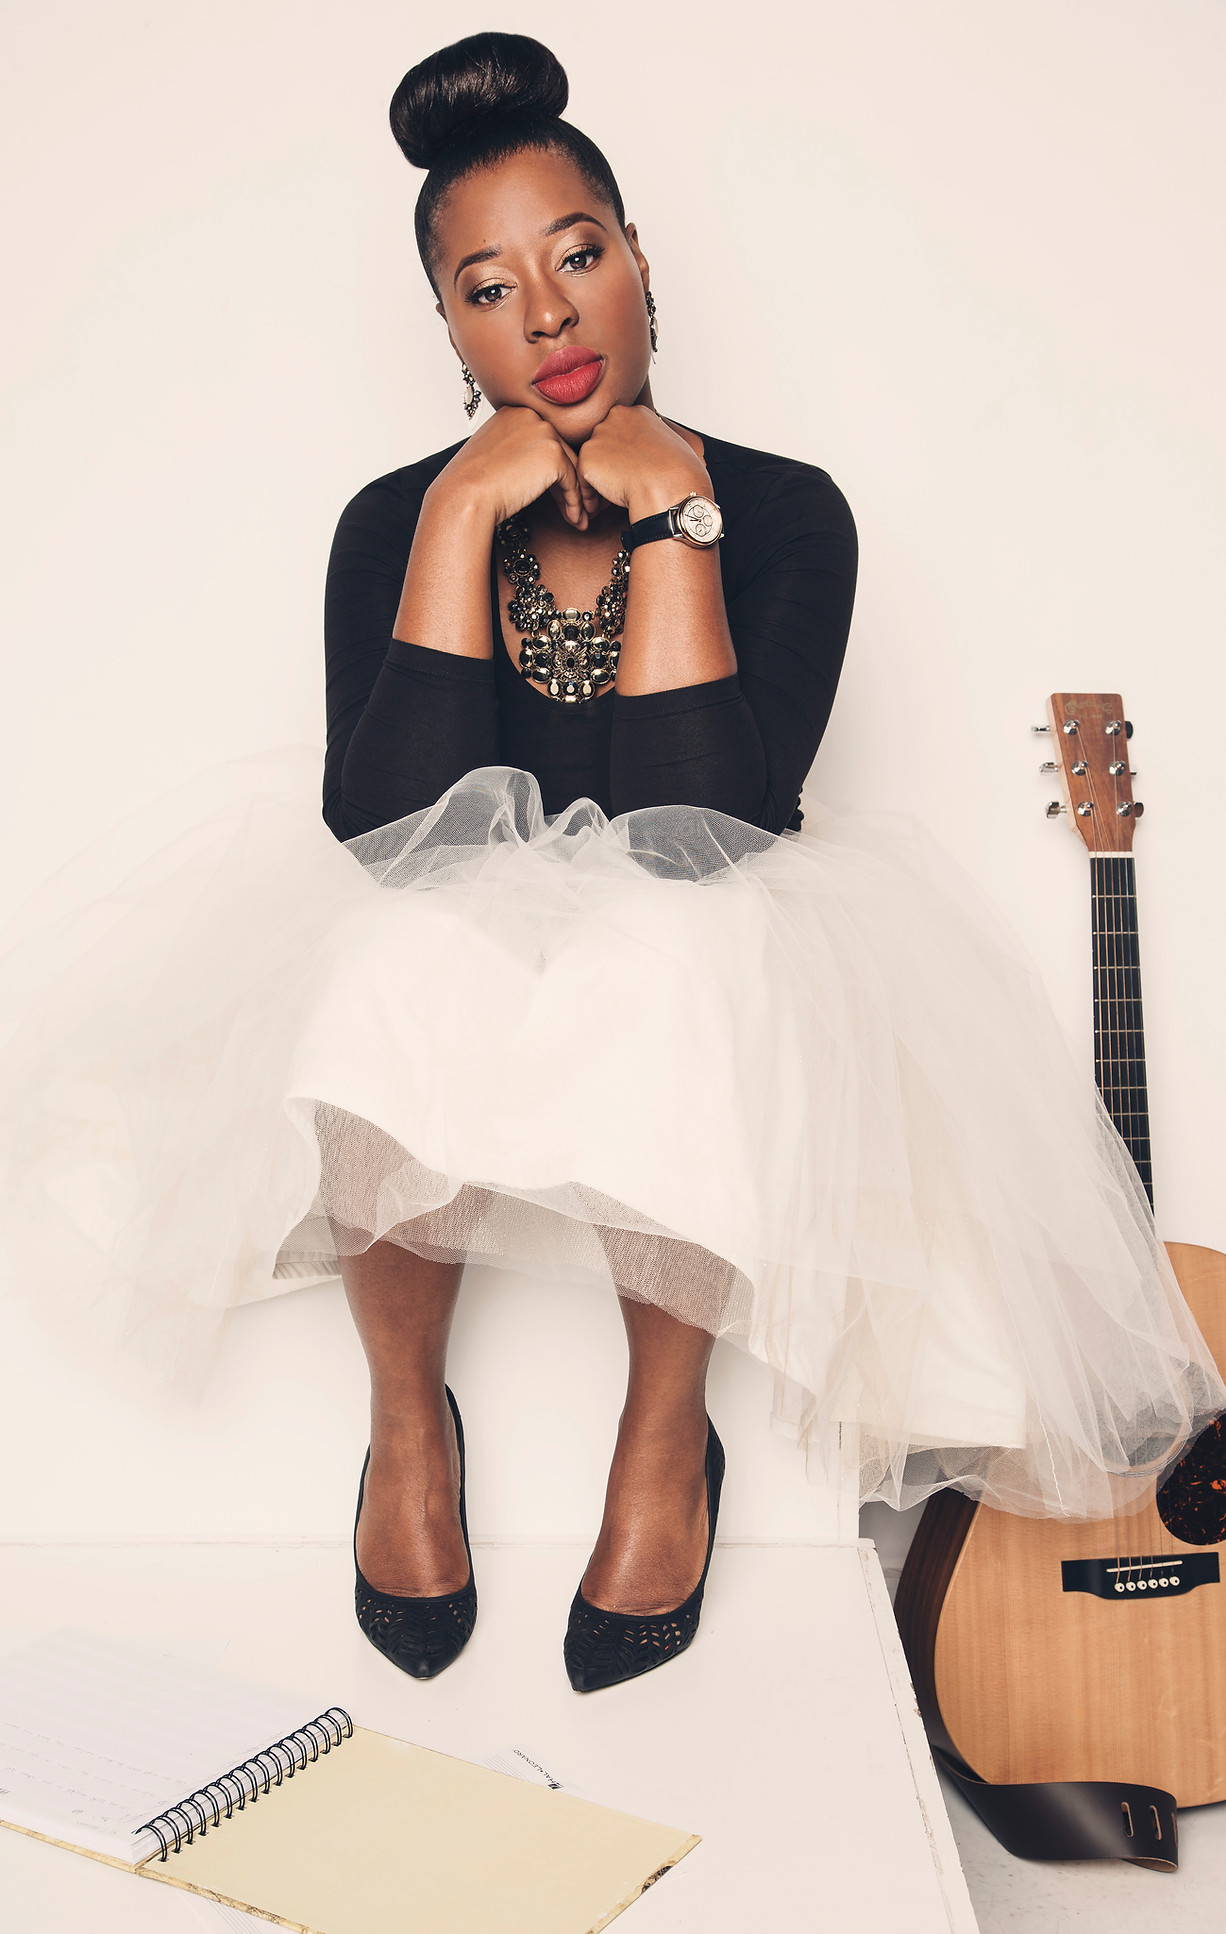 Temeka Williams, Singer Songwriter